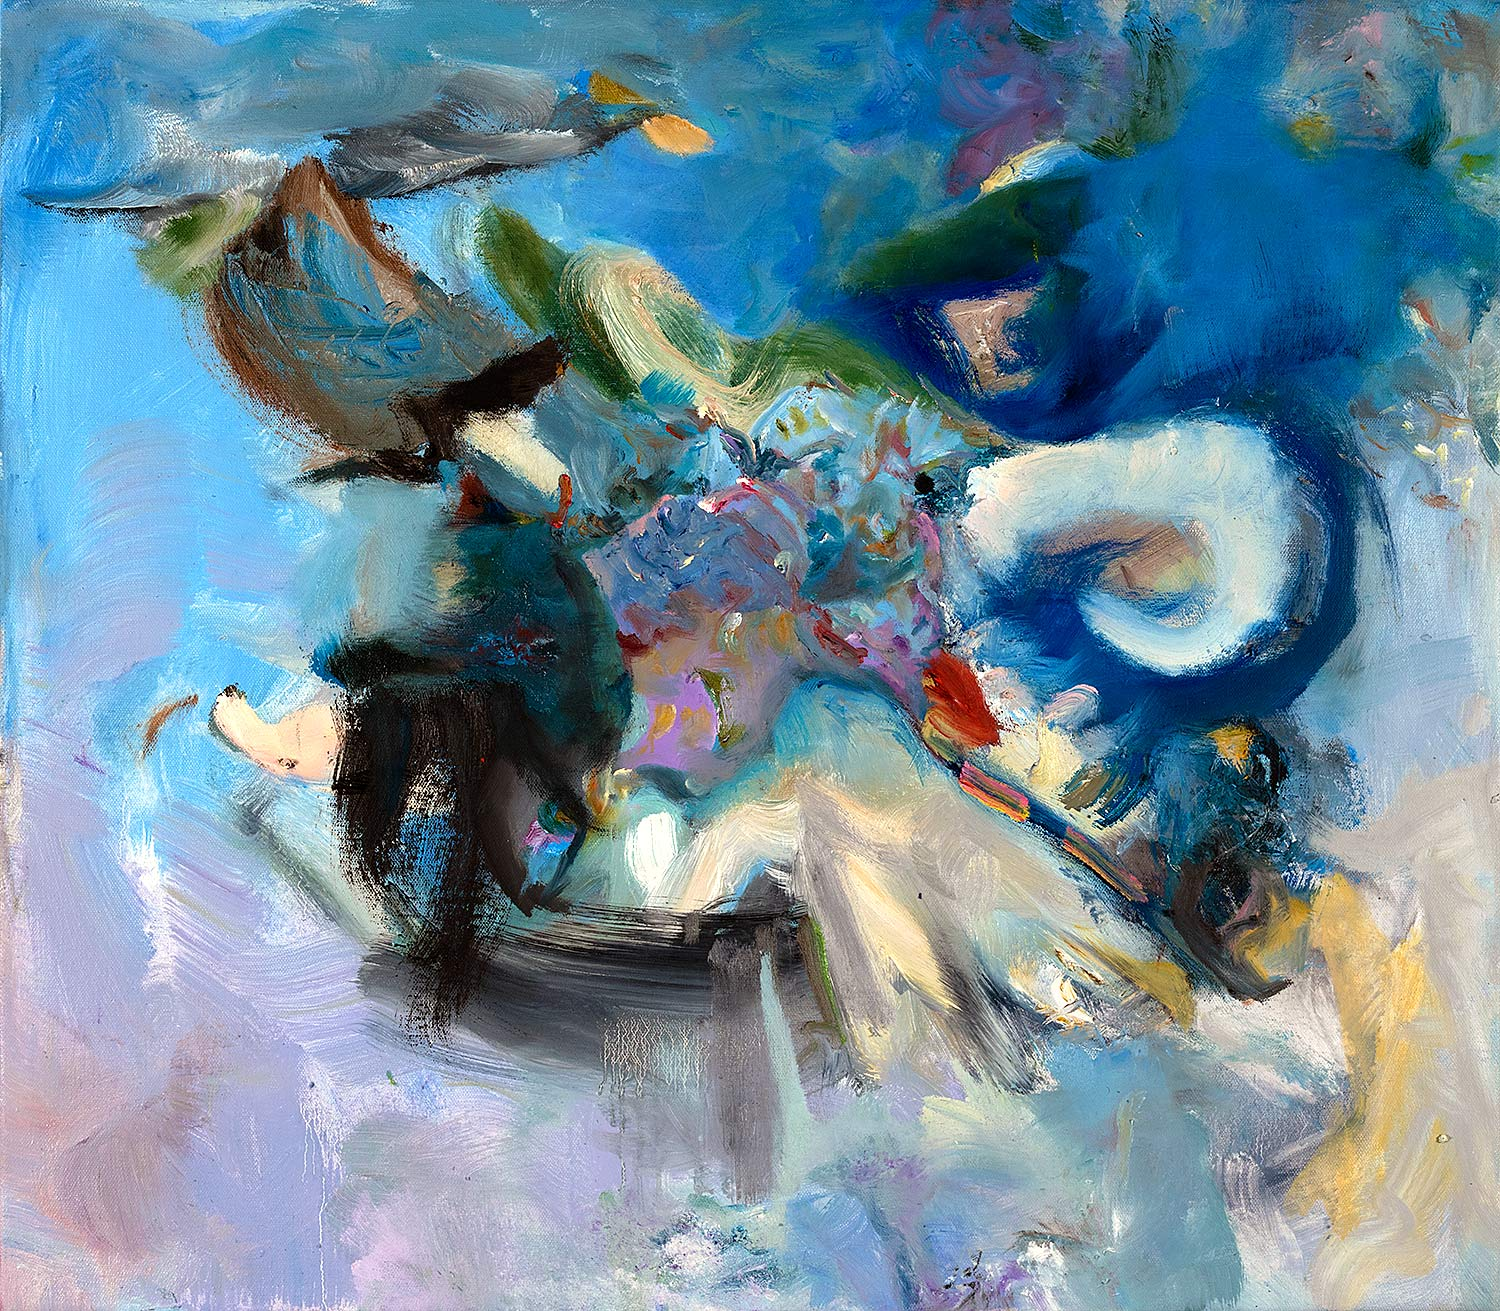 Cherubim  2018 oil on canvas 22 x 25 in.